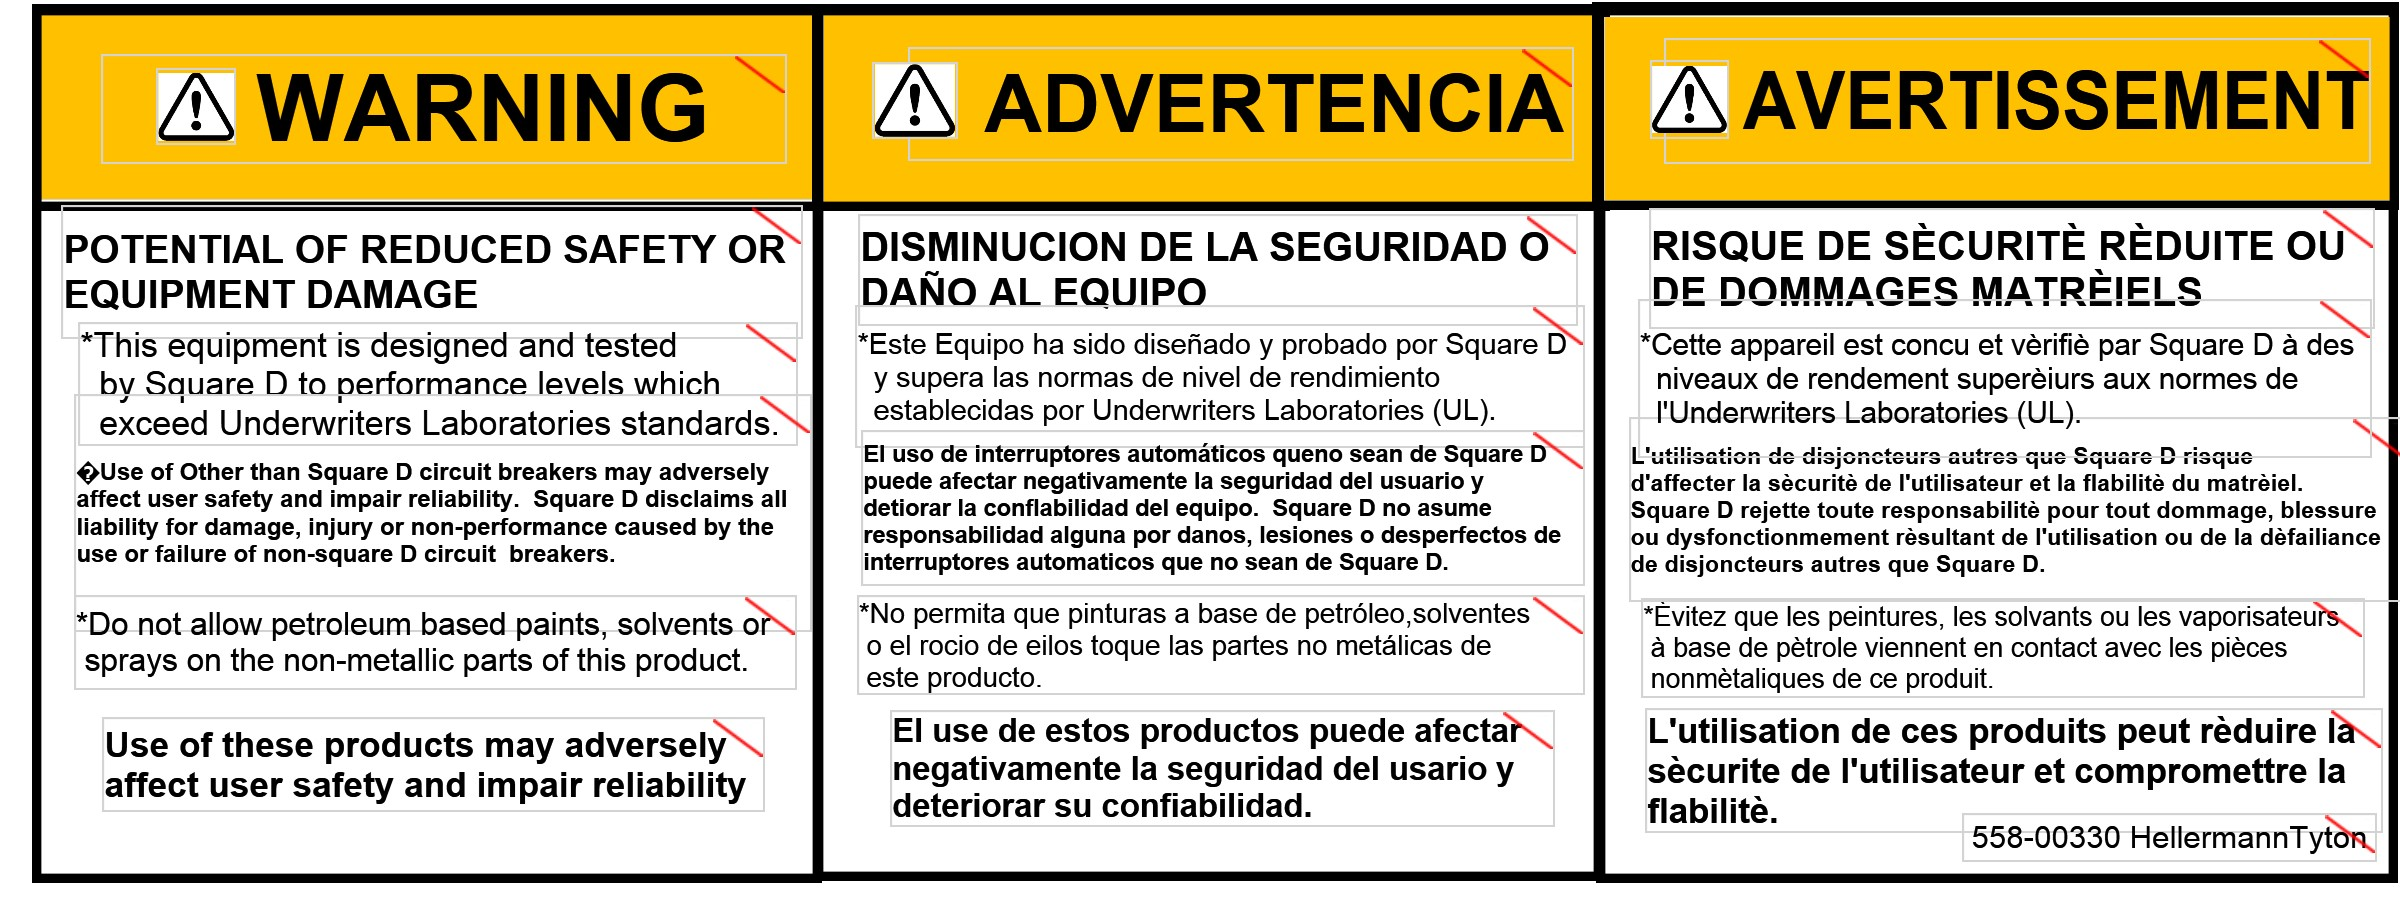 MULTI LINGUAL WARNING LABEL 3 INCH TT4030